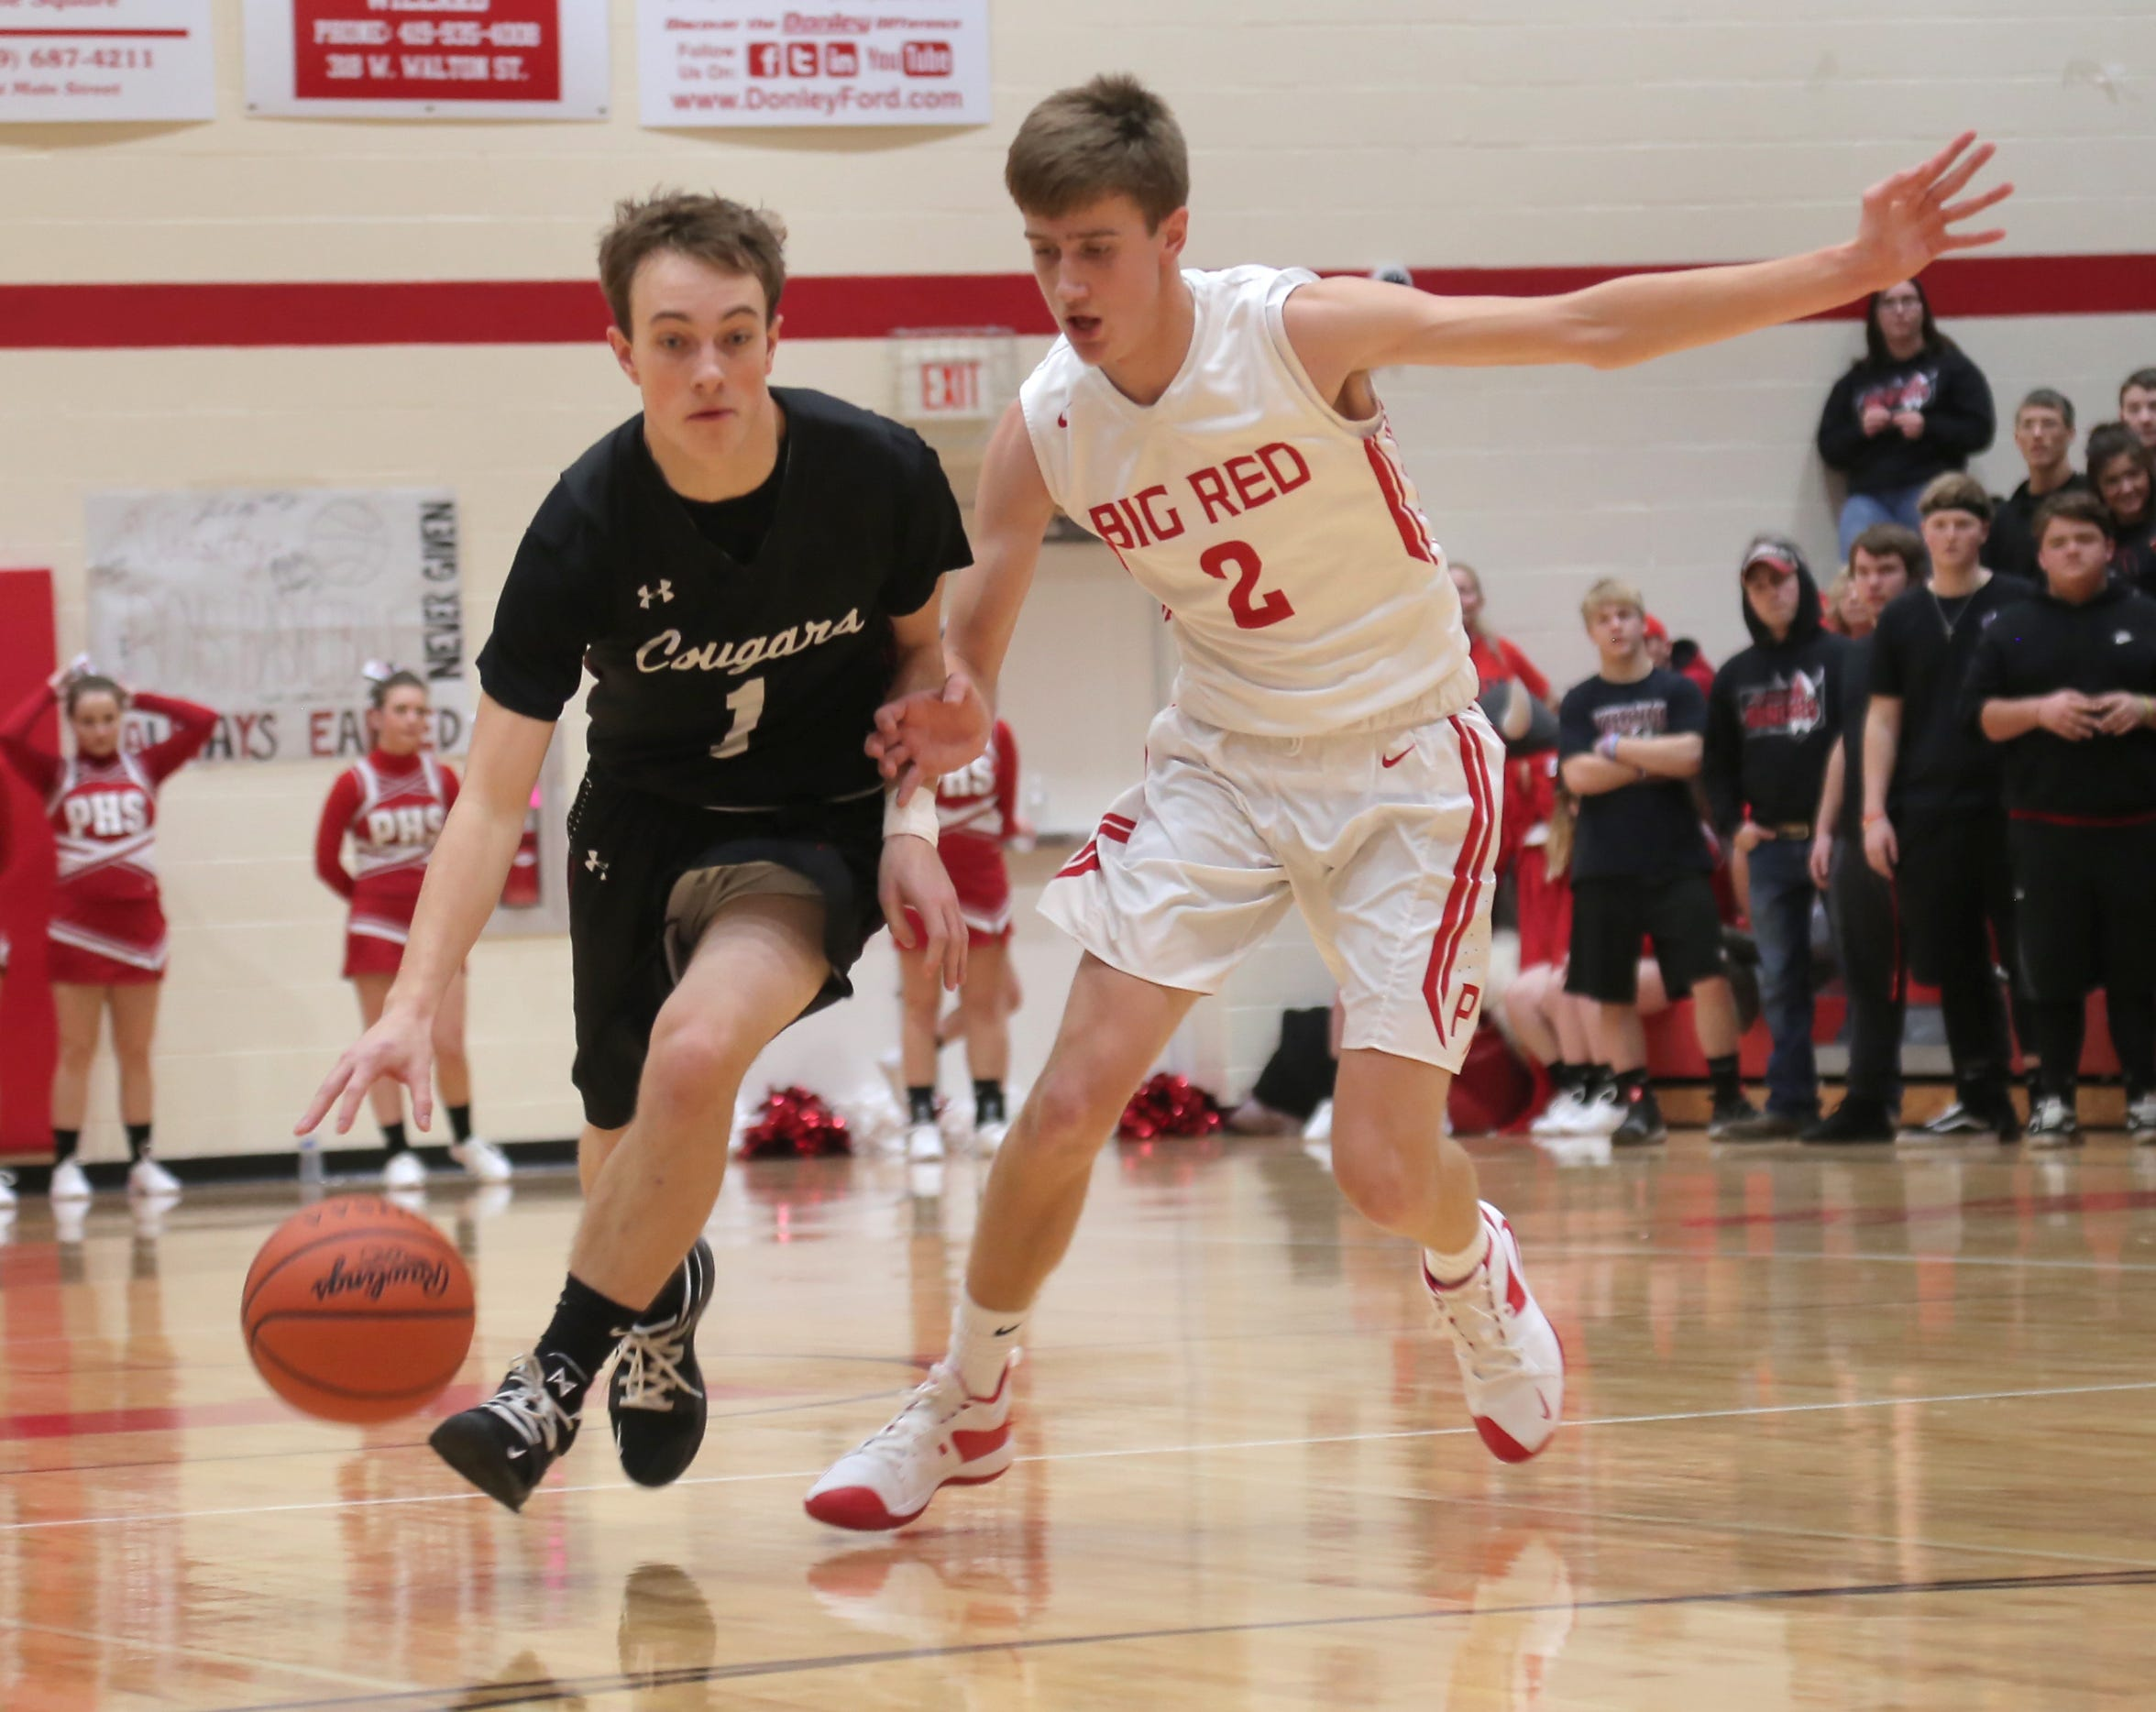 Crestview's Jacob Greer dribbles against Plymouth's Jacob Adams during the 2018-19 season.